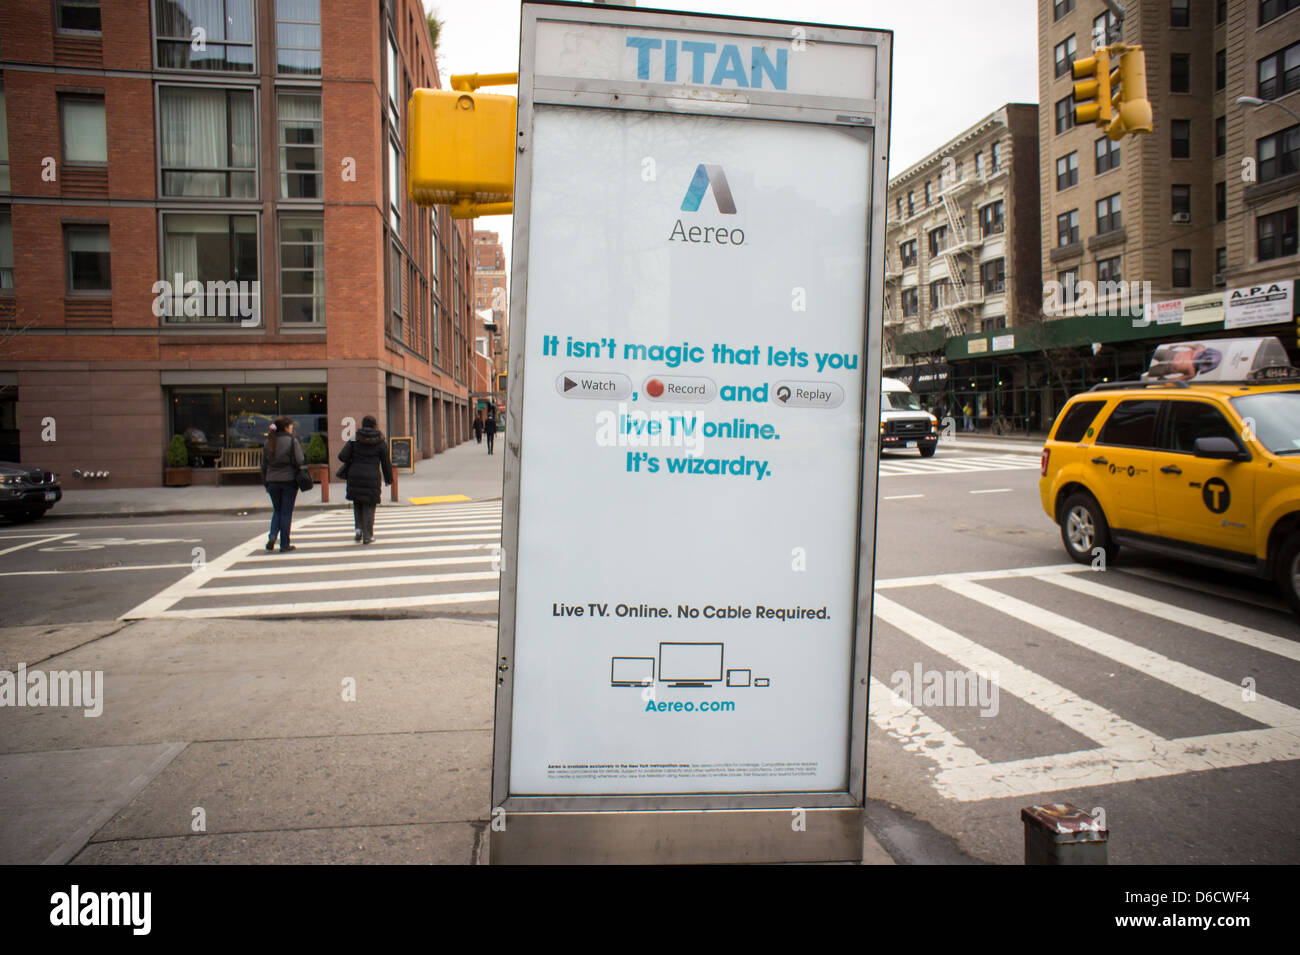 Advertising for the Aereo internet television service is seen on a telephone kiosk in the Chelsea neighborhood of - Stock Image